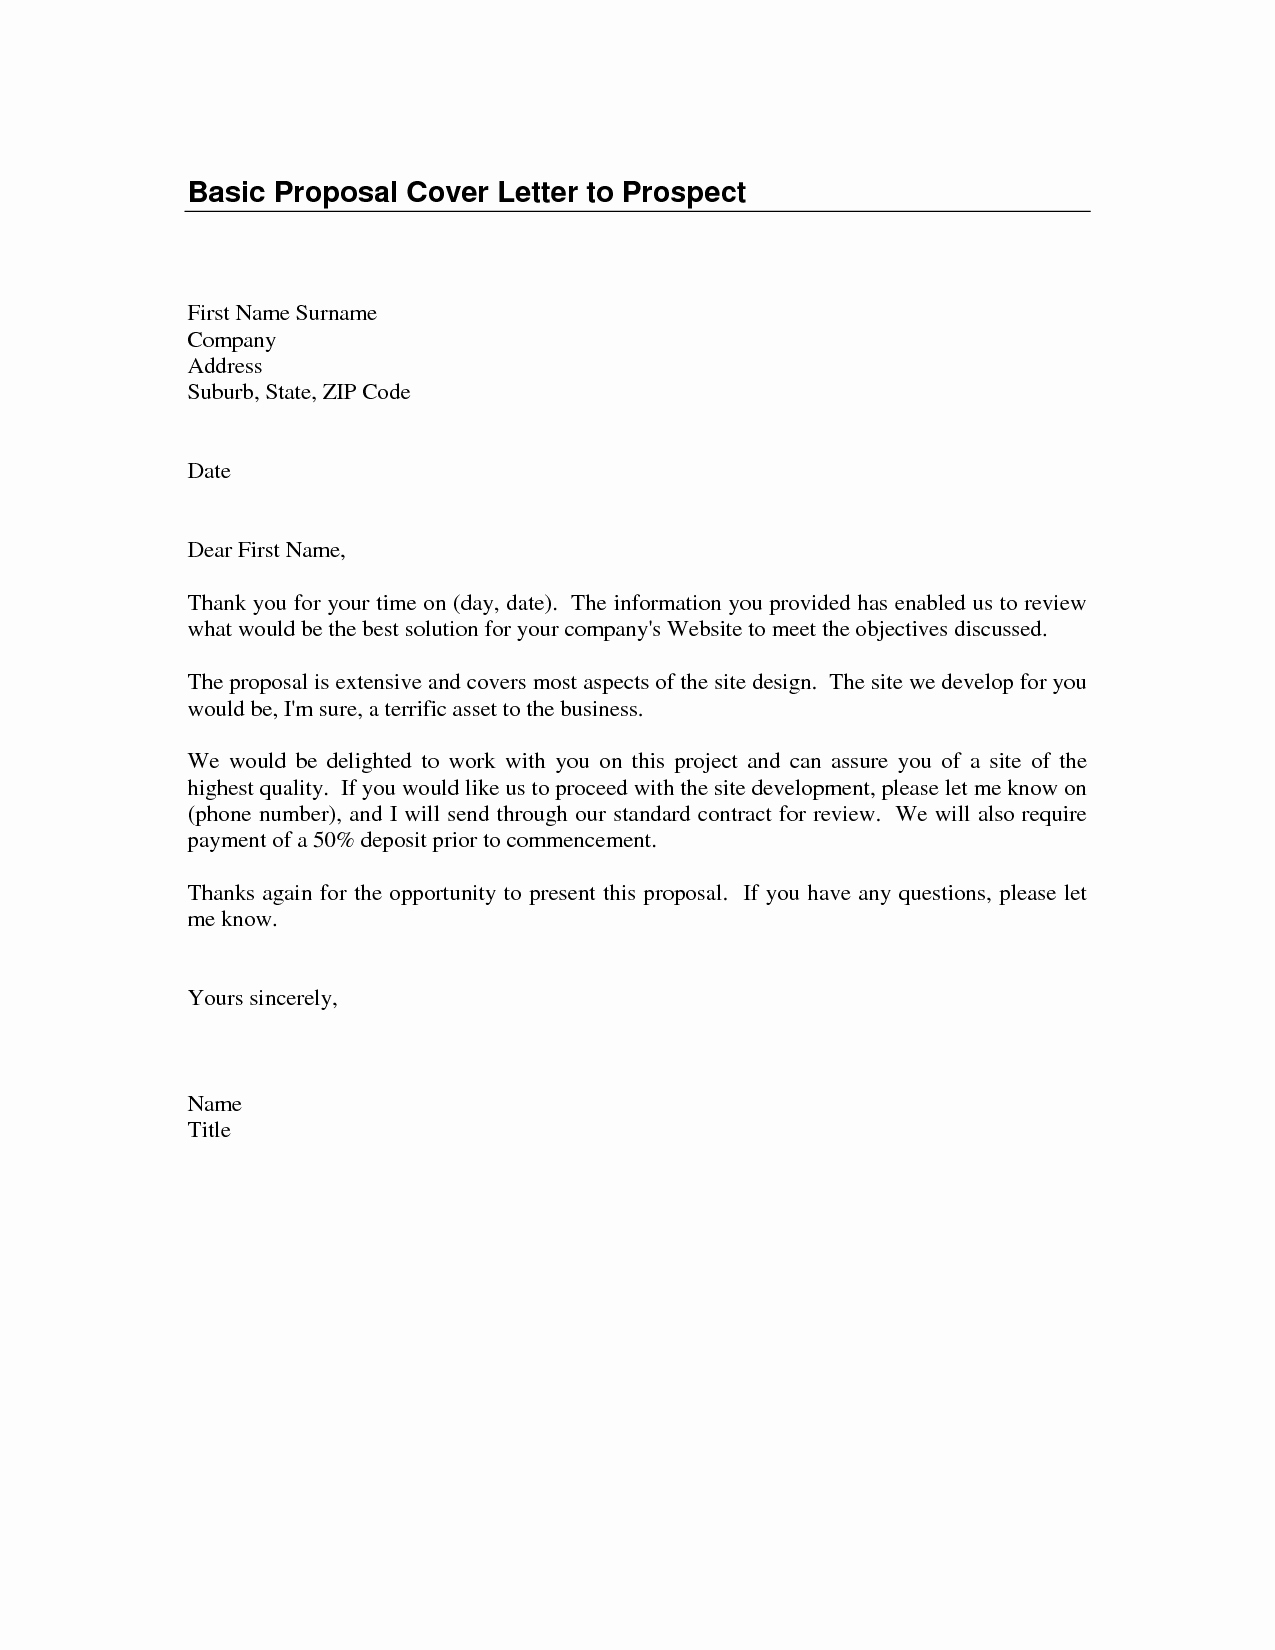 Cover Letter Free Template Elegant All Cover Letter Samples for Professionals